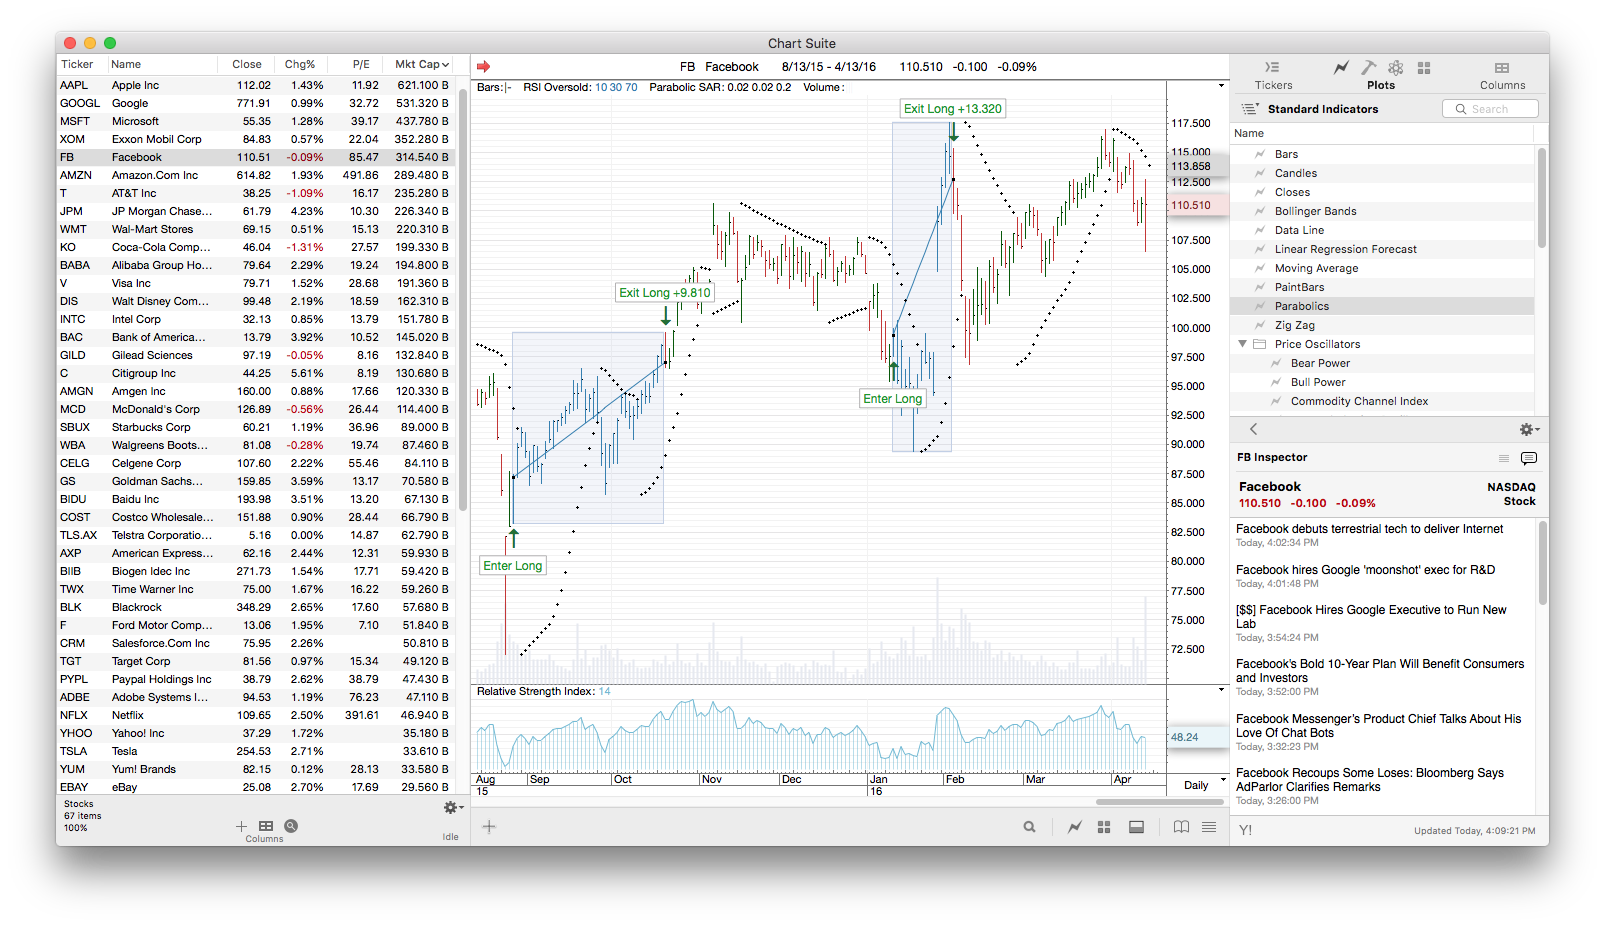 BeeSoft Releases ProTA 4.1 Adding Fundamental Analysis Image